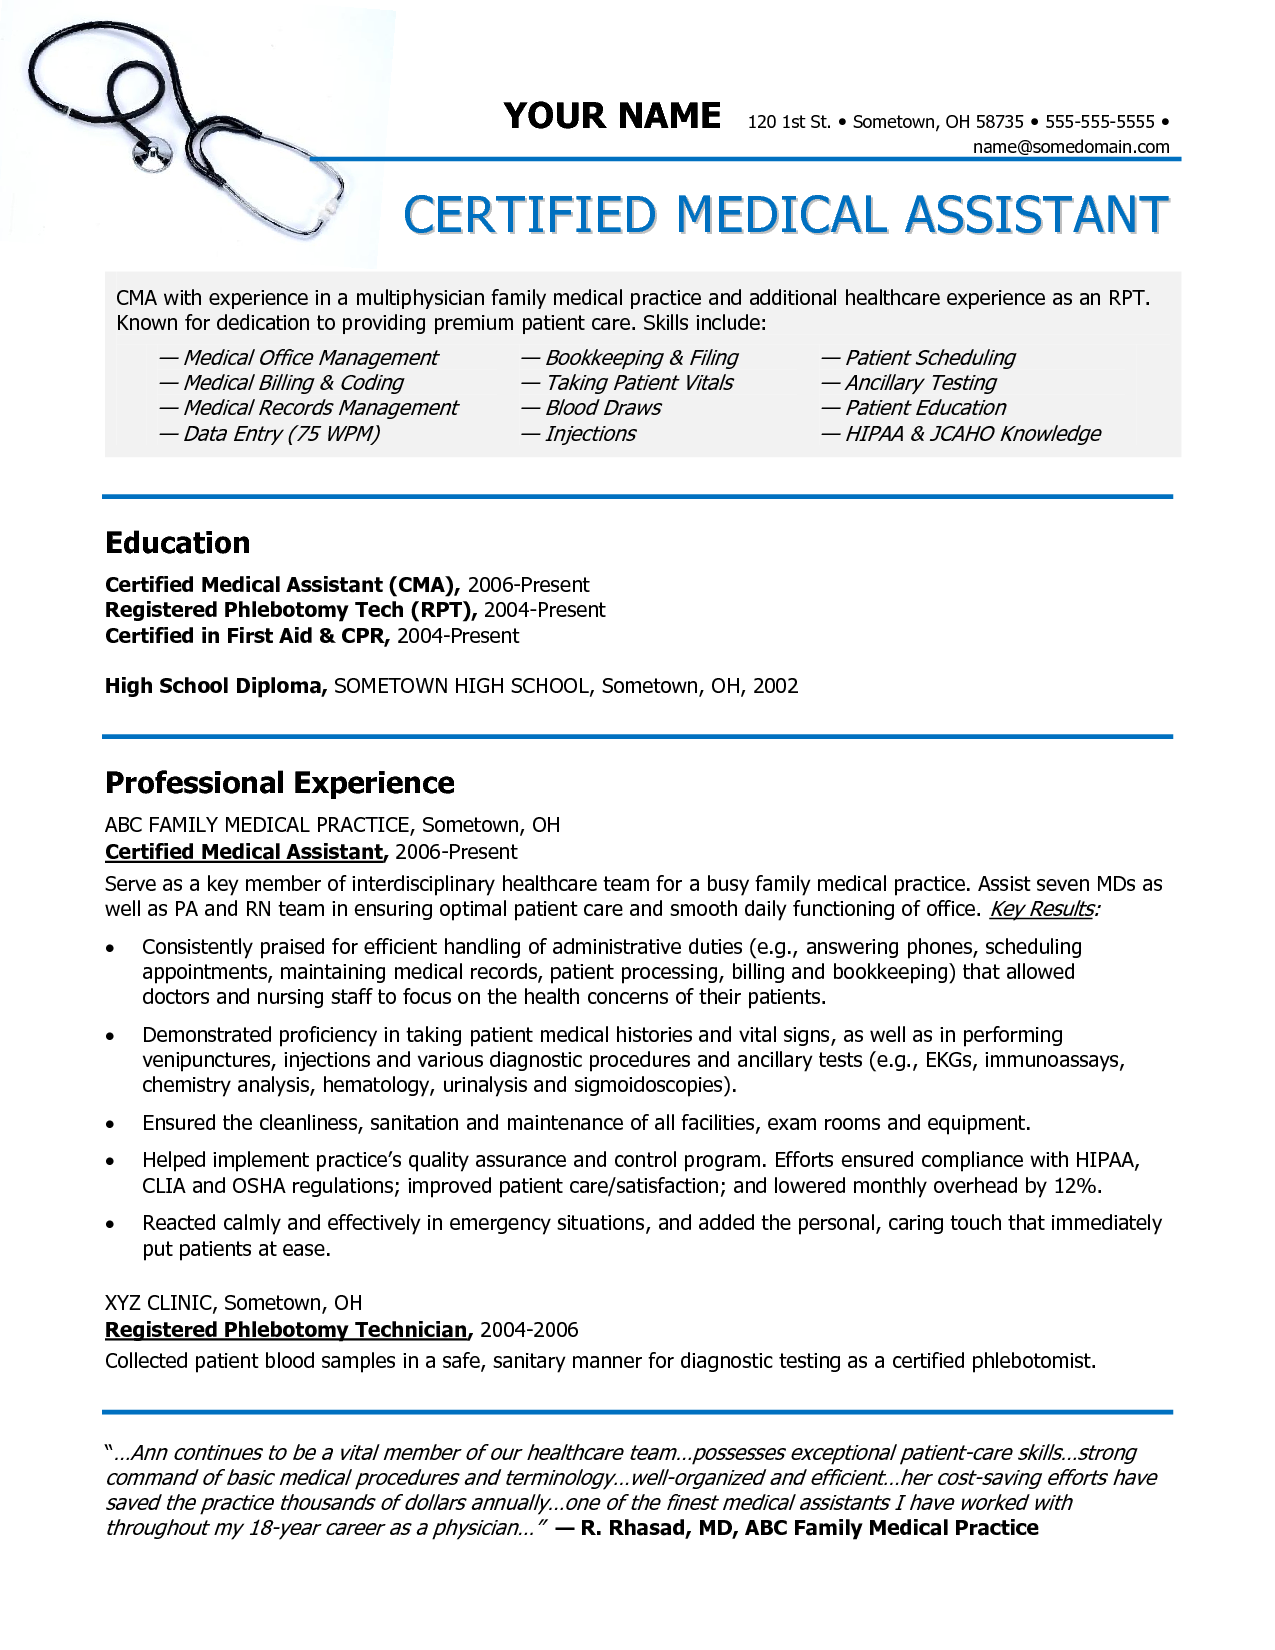 Medical Assistant Resume Objective Examples Medical Assistant Resume Entry Level Examples 18 Medical Assistant .